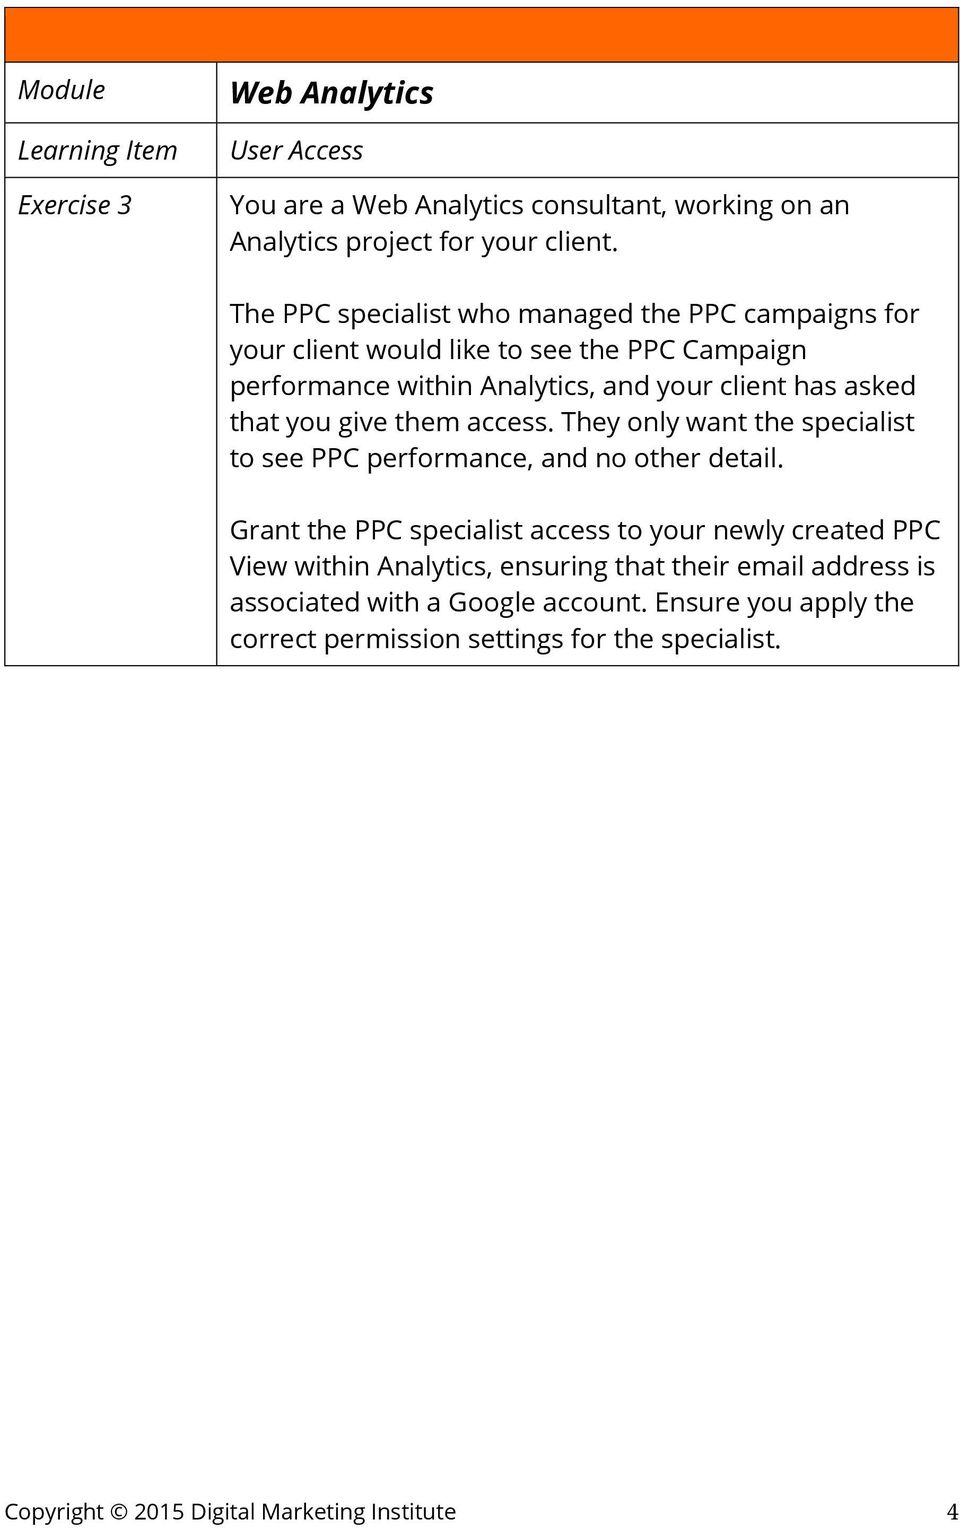 asked that you give them access. They only want the specialist to see PPC performance, and no other detail.